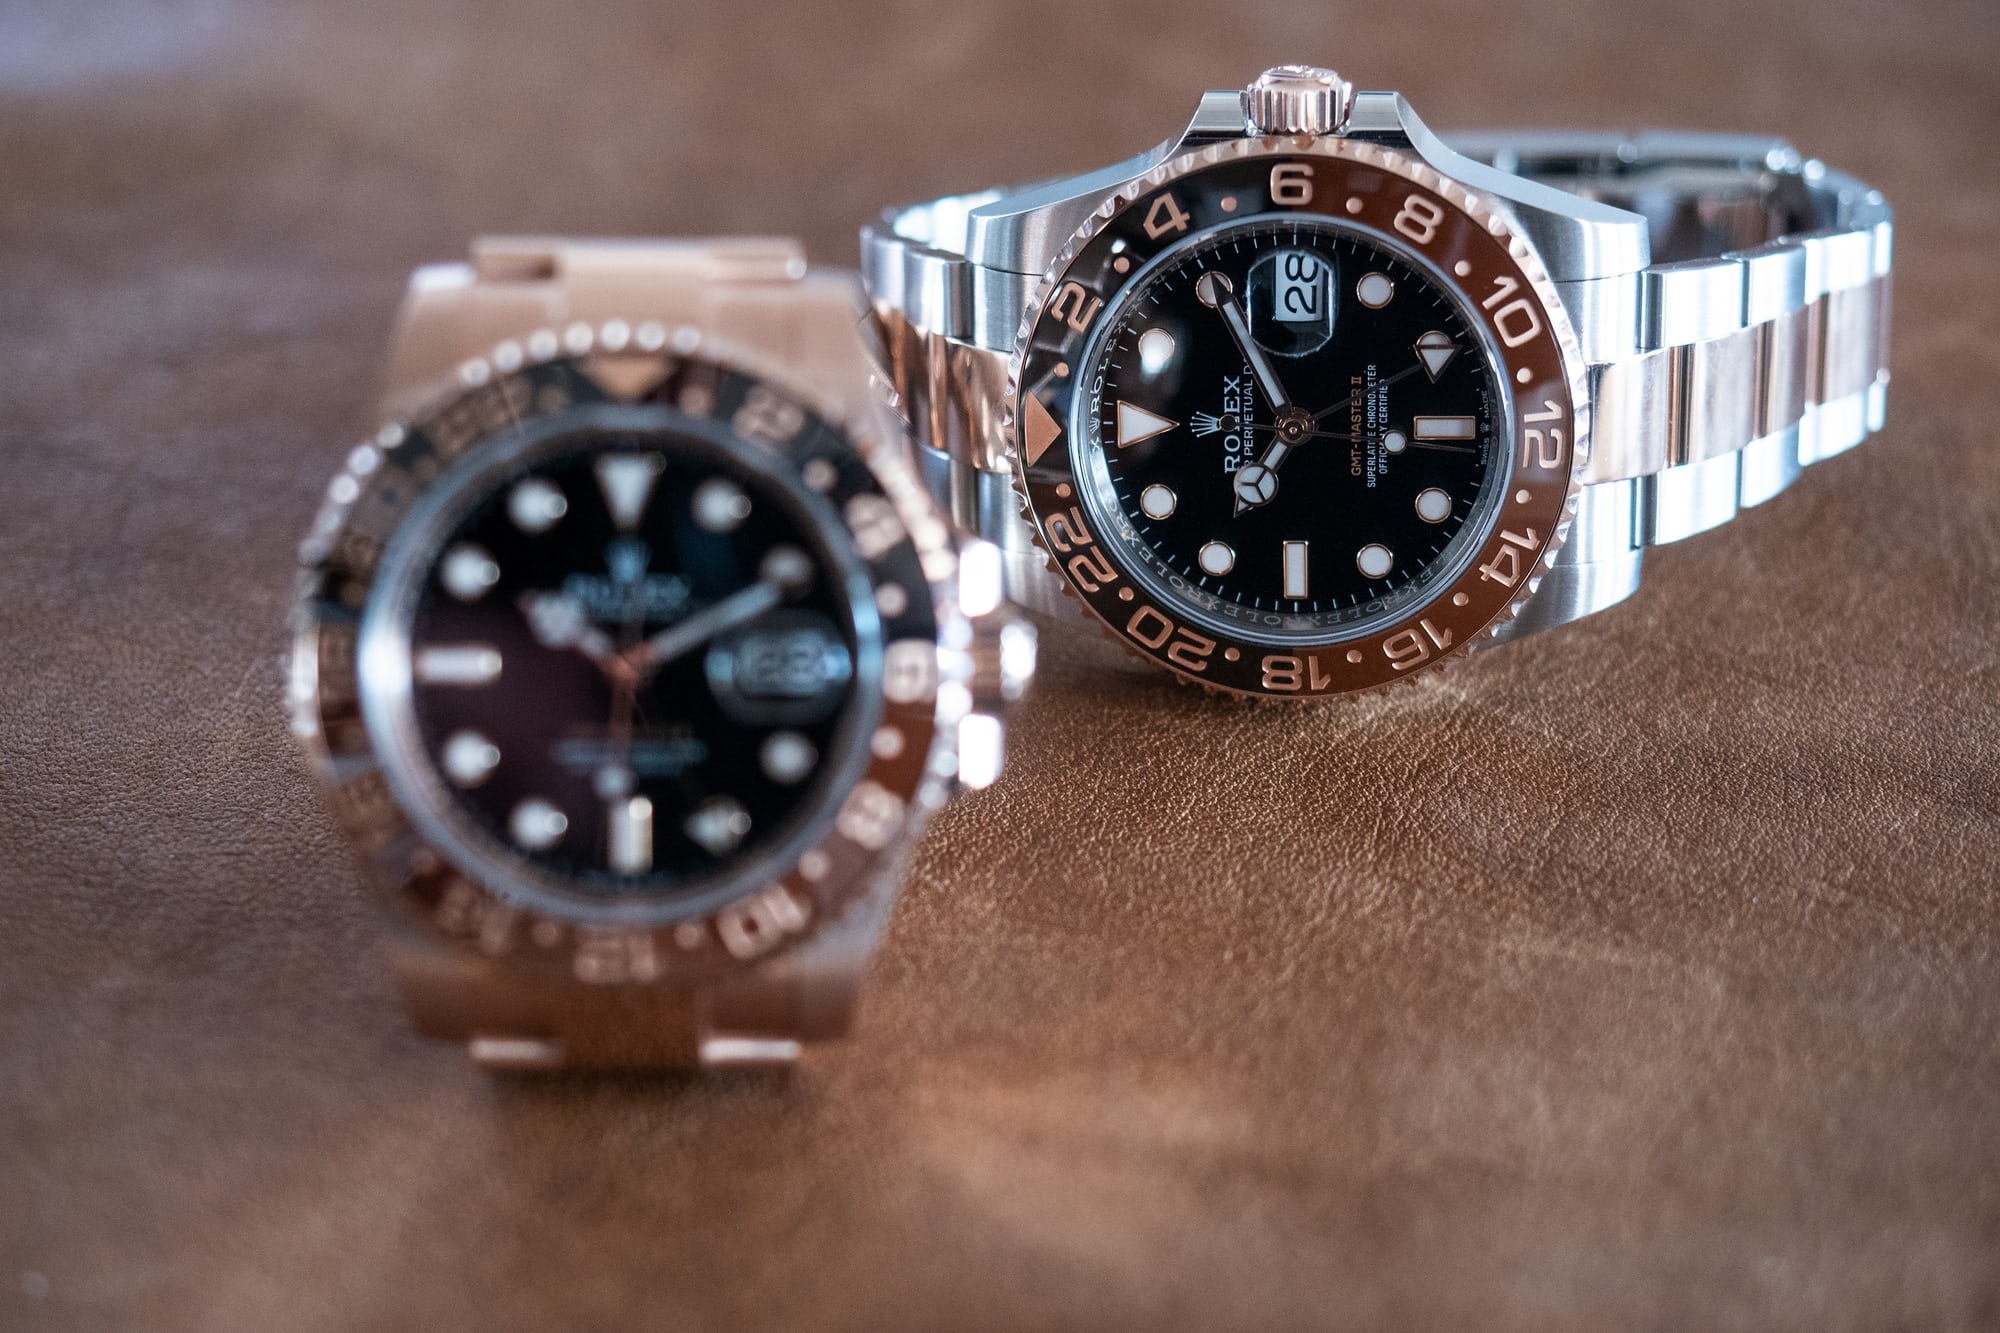 Hands-On: The Rolex Everose GMT Master II Vs. The GMT Master II In Oystersteel And Everose Gold P5240668